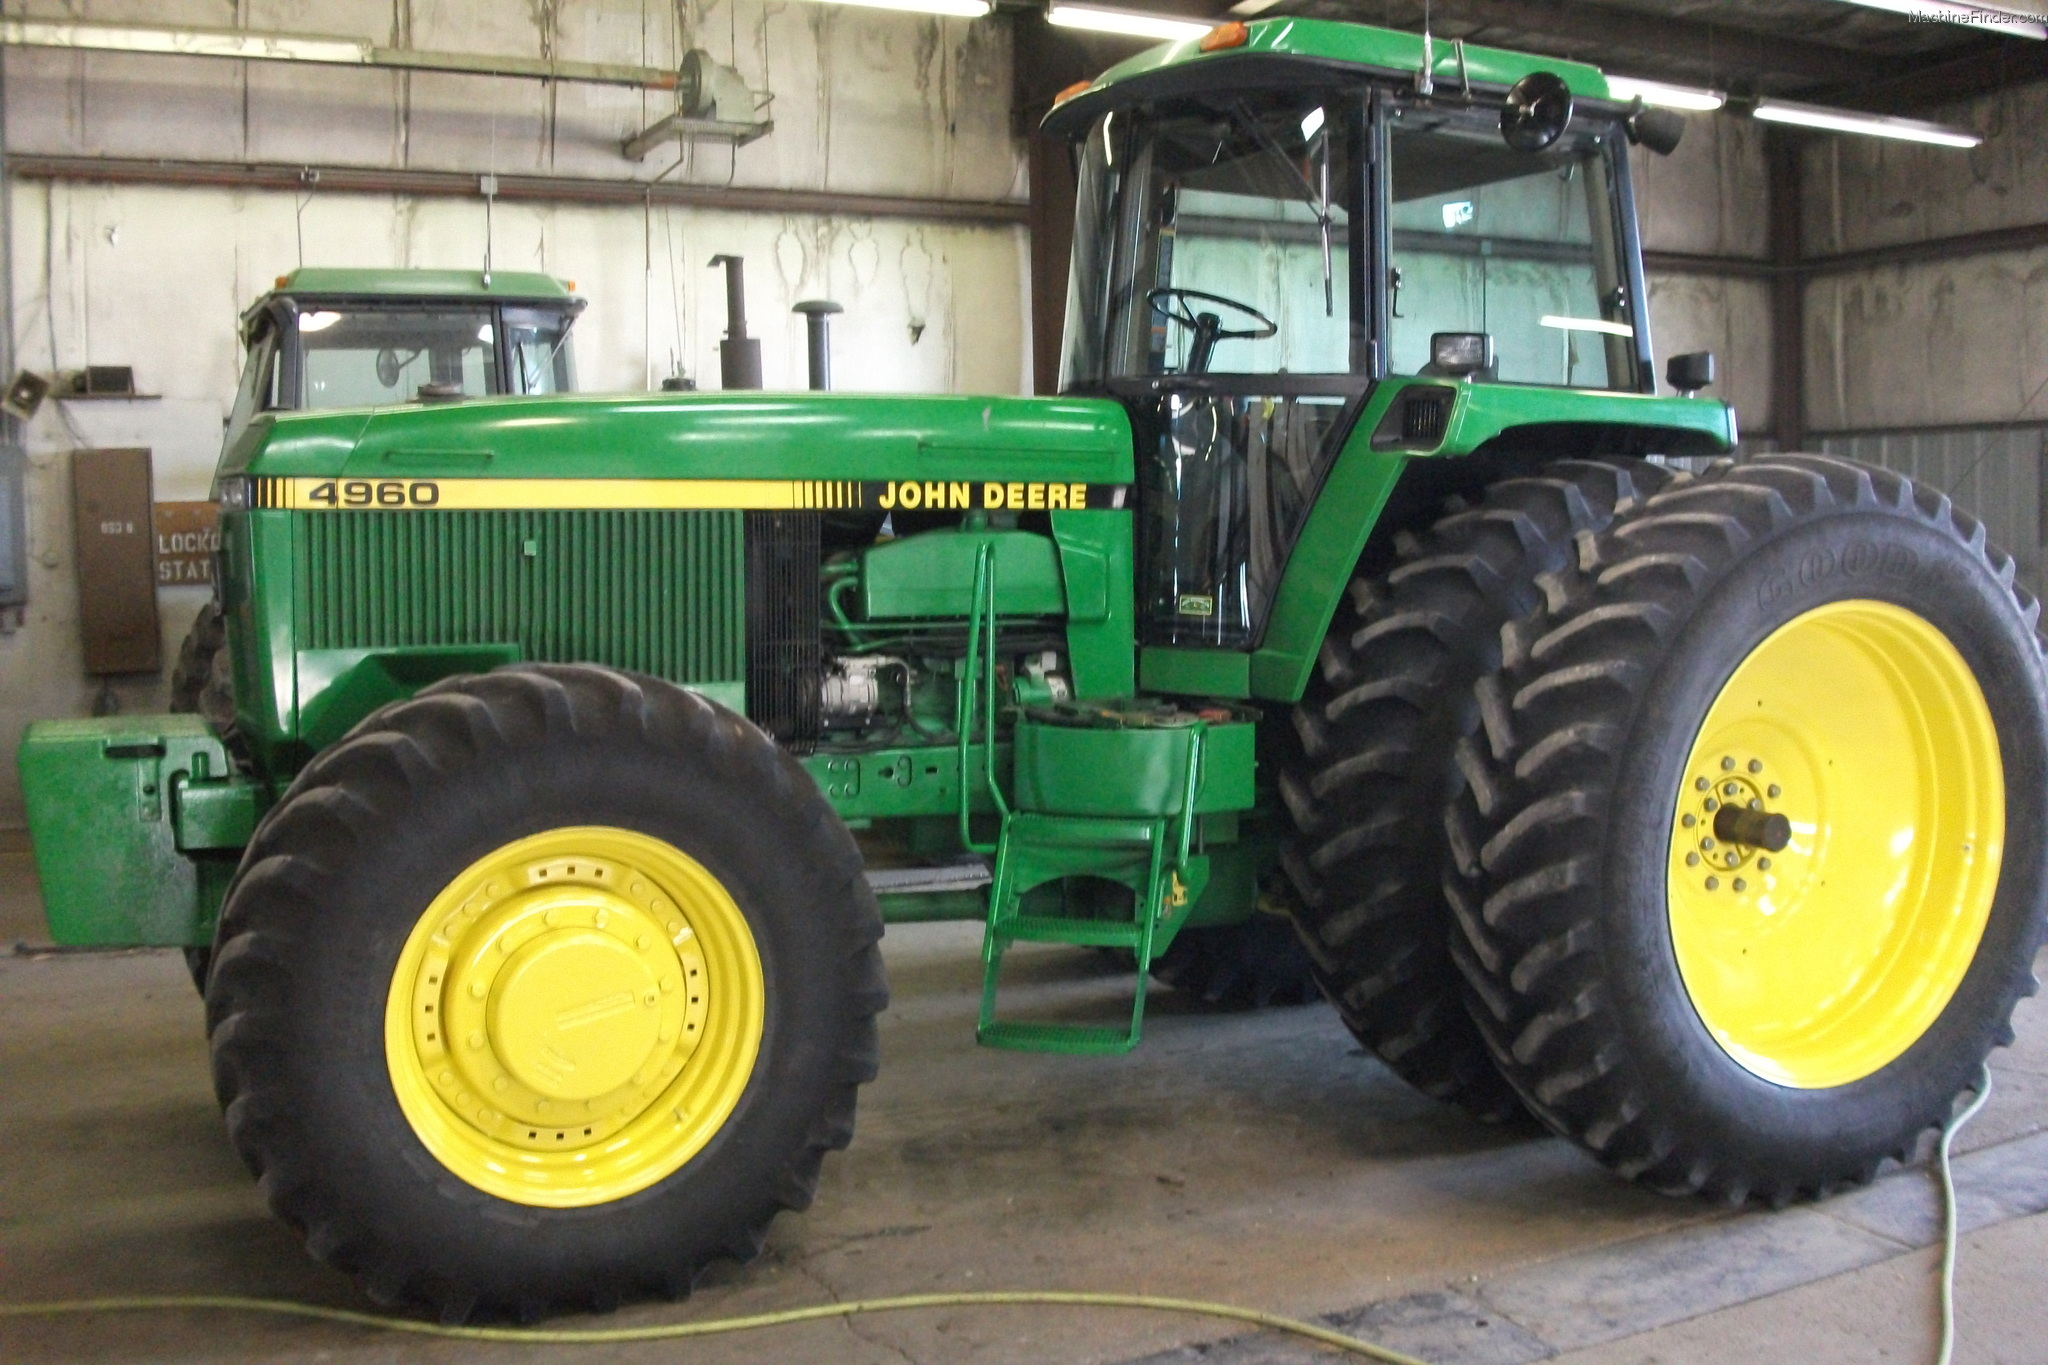 John Deere 4960 Wiring Diagram Will Be A Thing 4430 Tractor Diagrams For Rear End 3020 Electrical Service Manuals